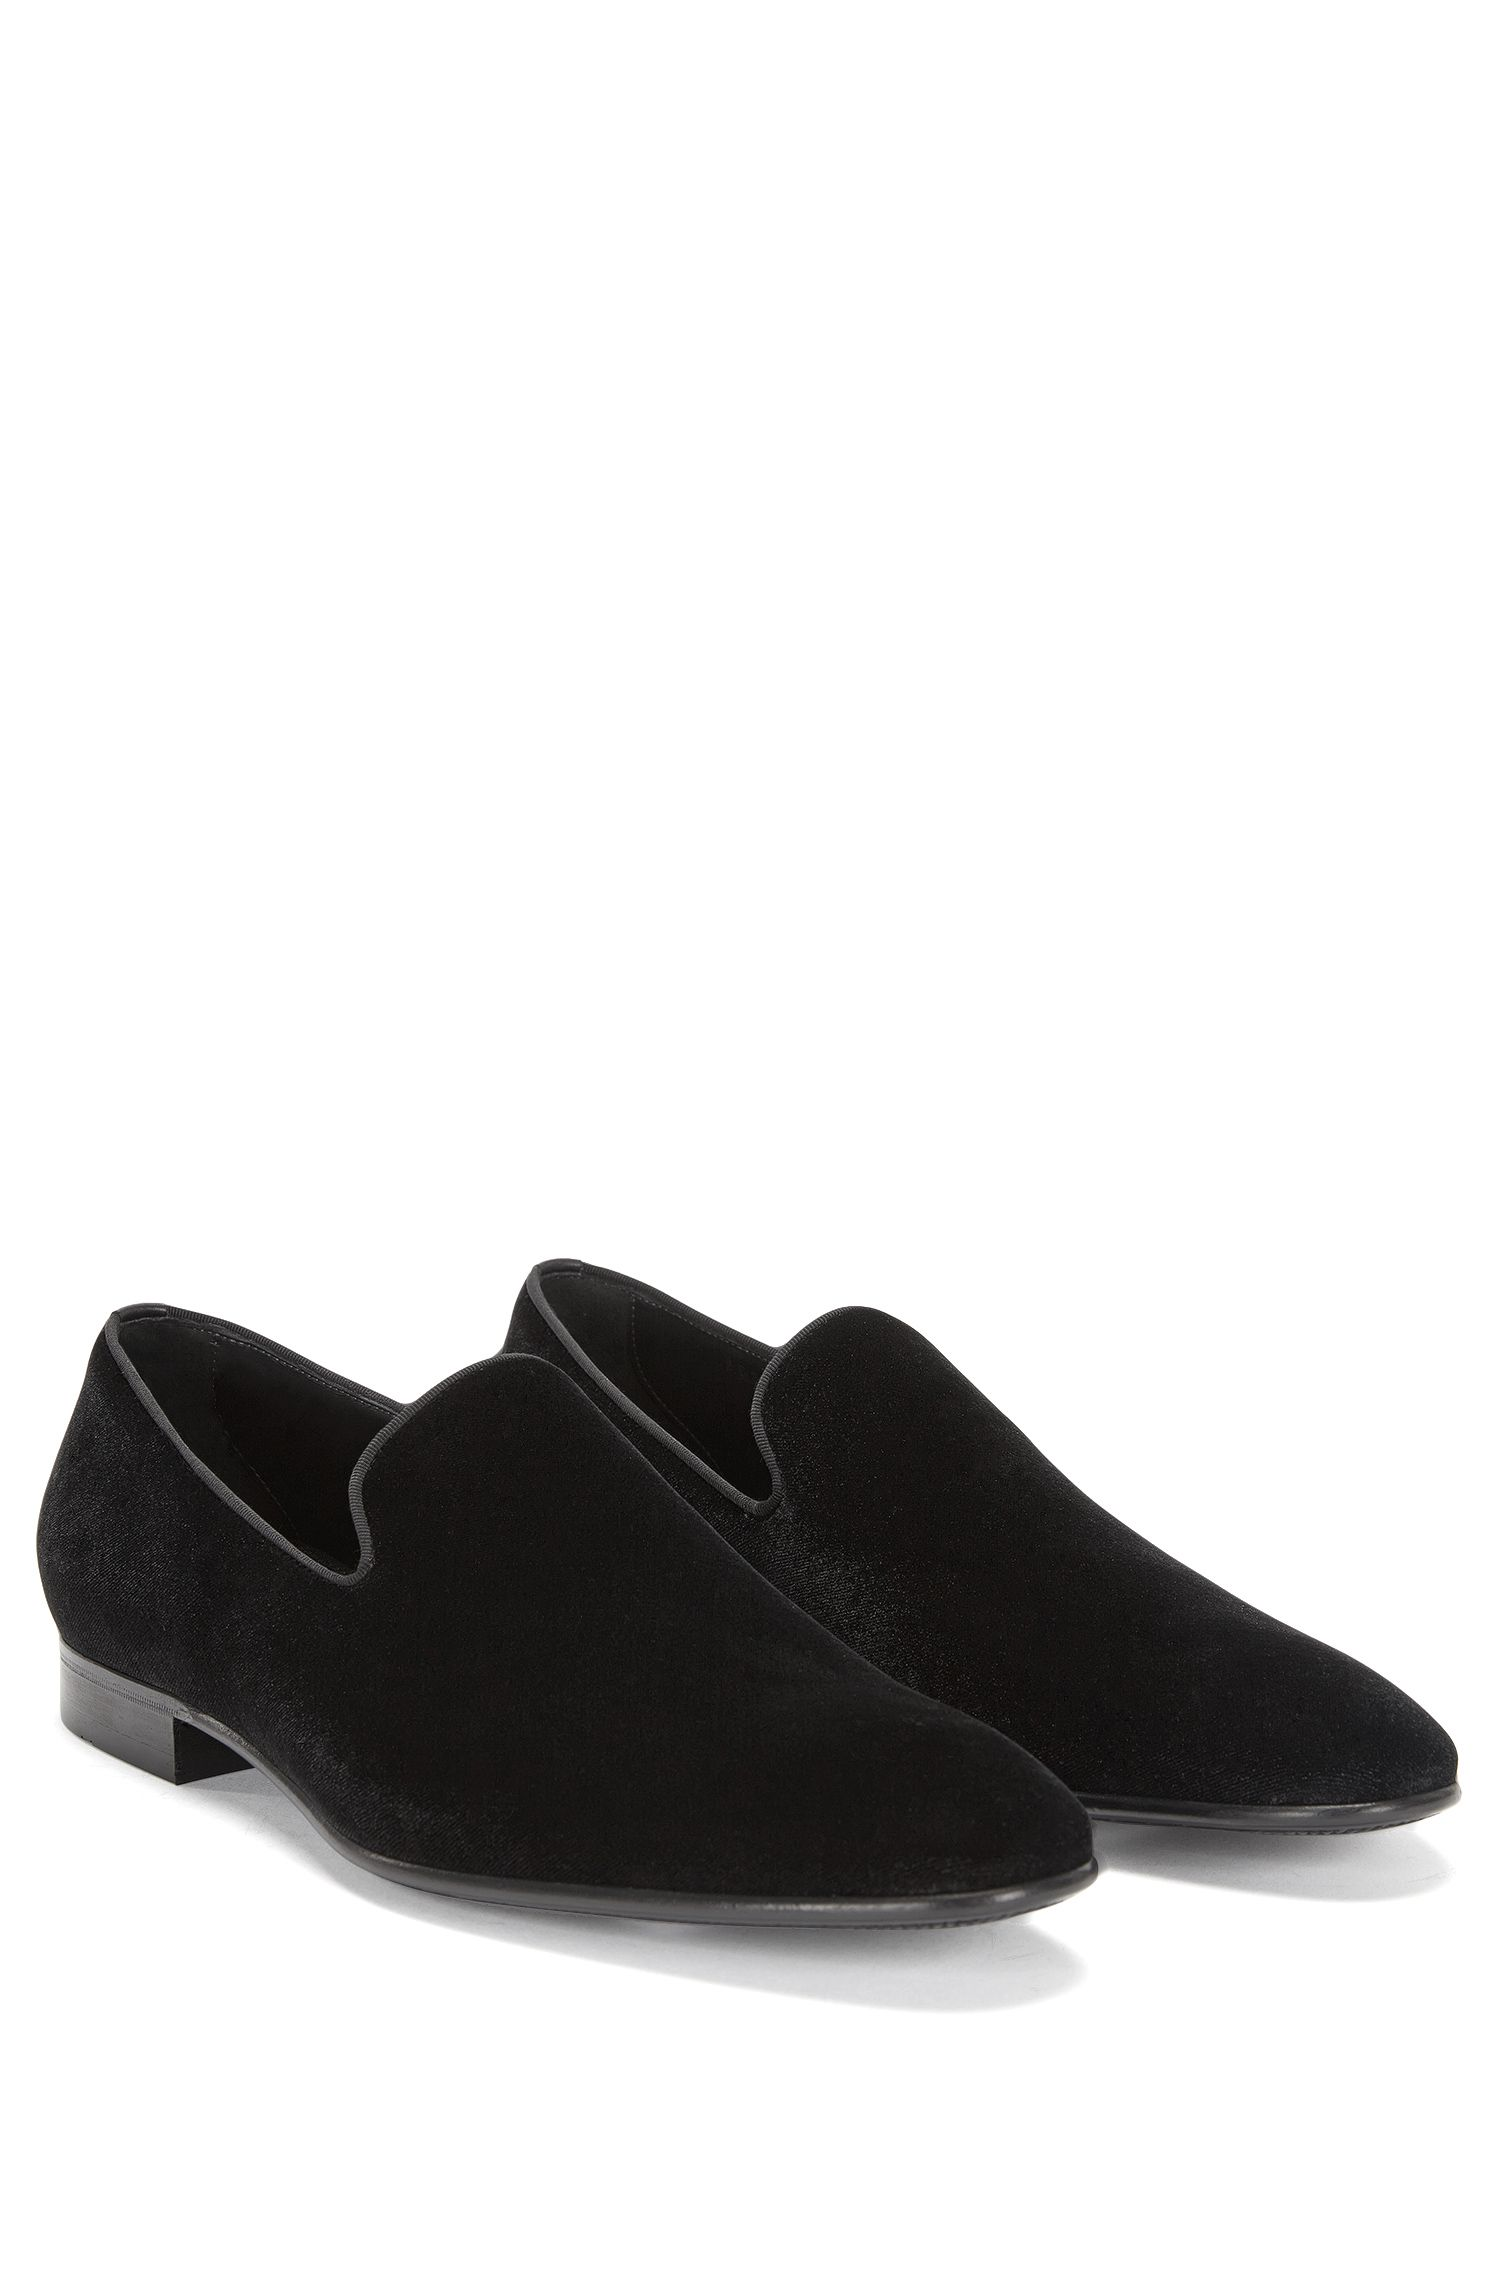 'Evening Loaf Vlt' | Cotton Blend Velvet Dress Loafers